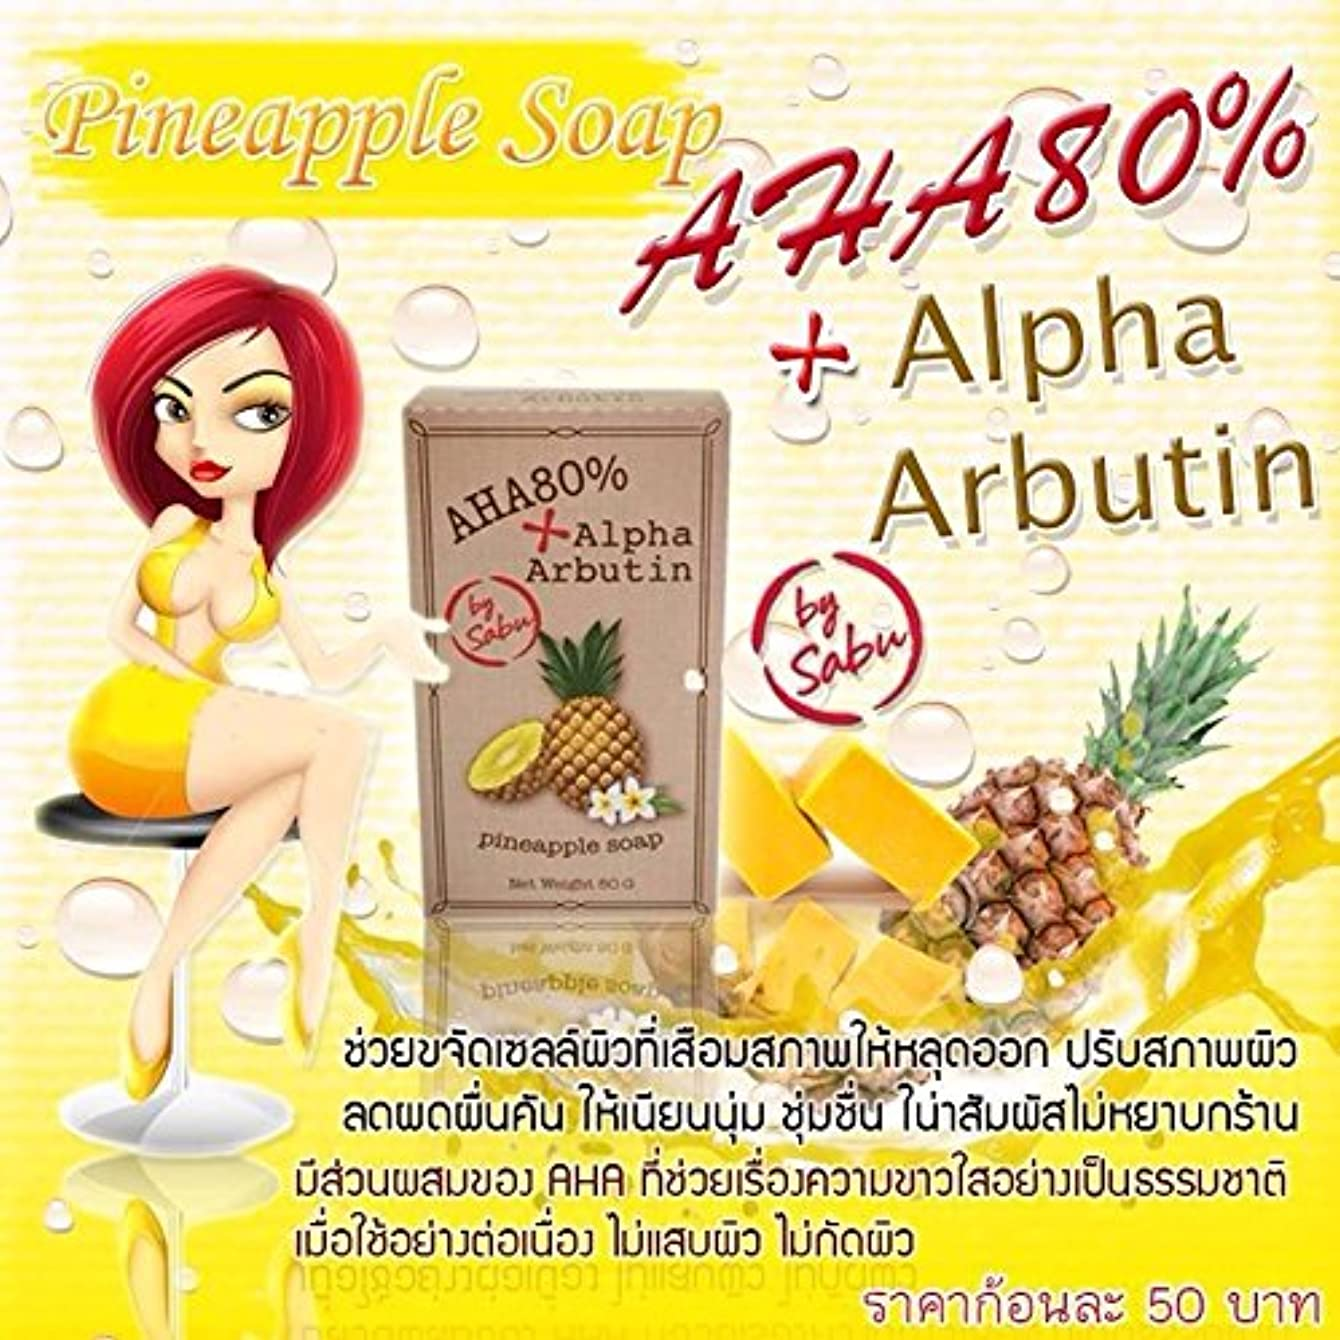 中庭承認する嫌い1 X Natural Herbal Whitening Soap.Alpha-Arbutin Pineapple AHA 80%. The skin whitening process is rapid. 80 g....